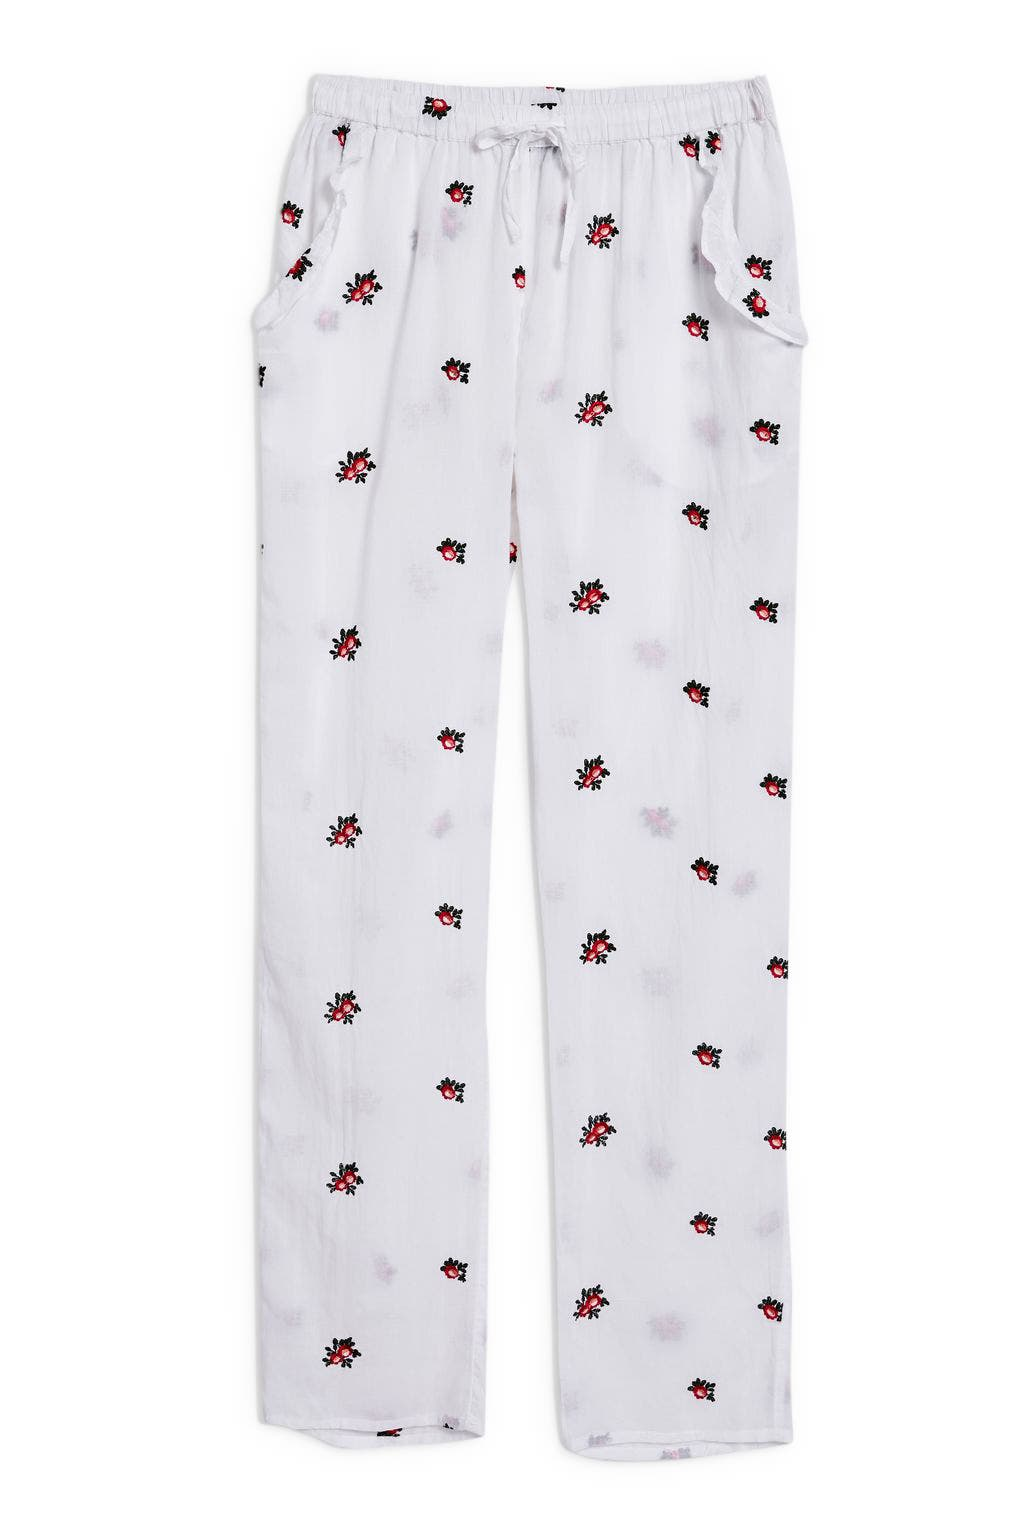 TOPSHOP,                             Embroidered Floral Ankle Pajama Pants,                             Alternate thumbnail 4, color,                             100